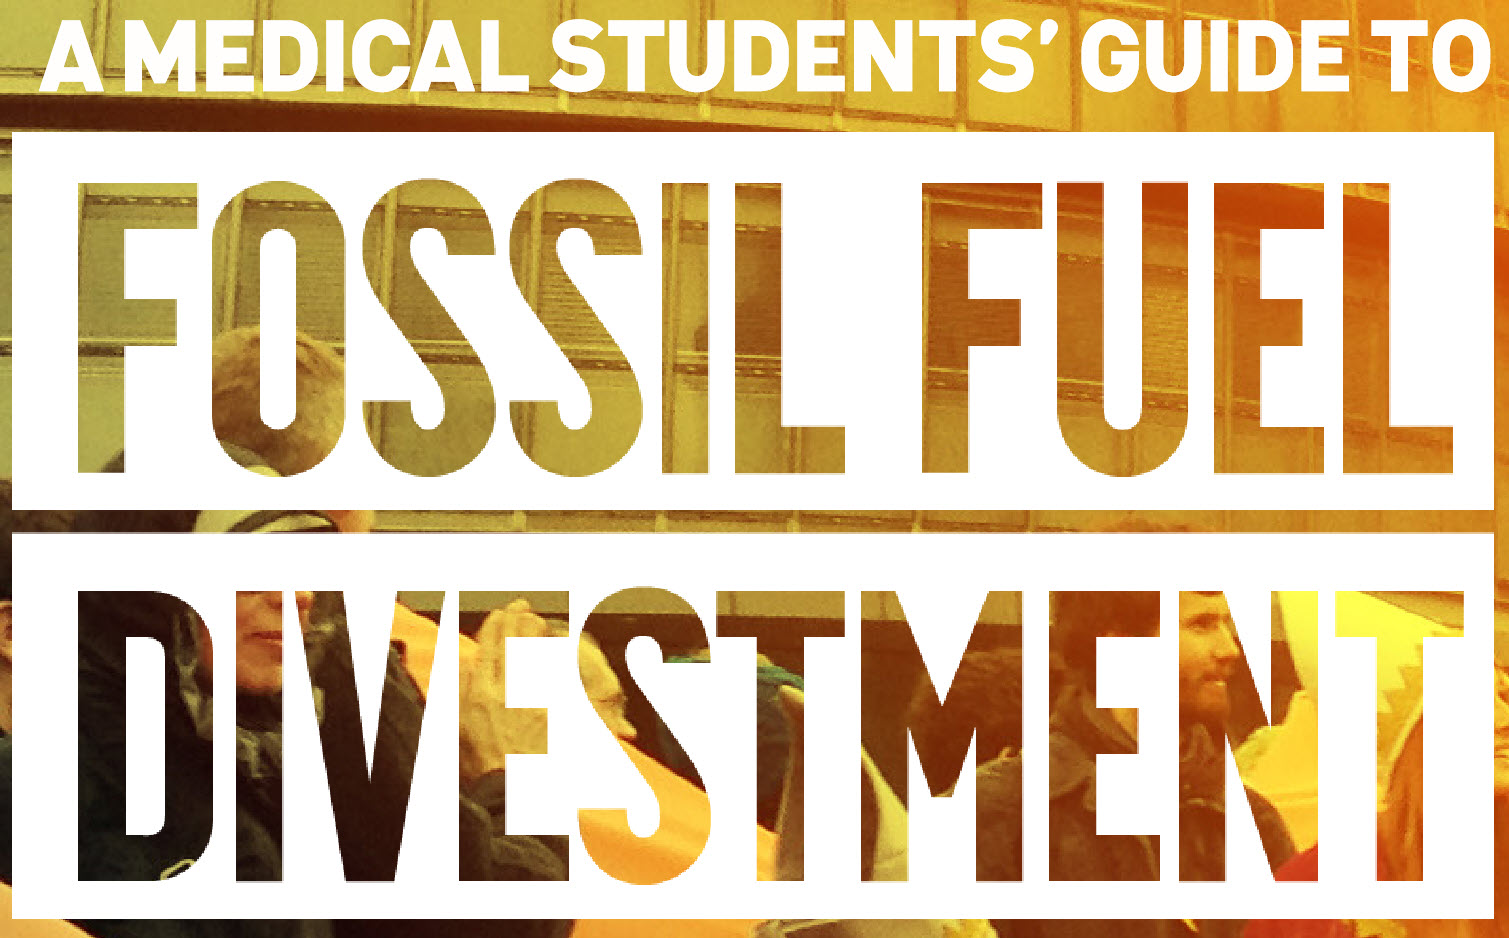 Medical Students Guide To Divestment